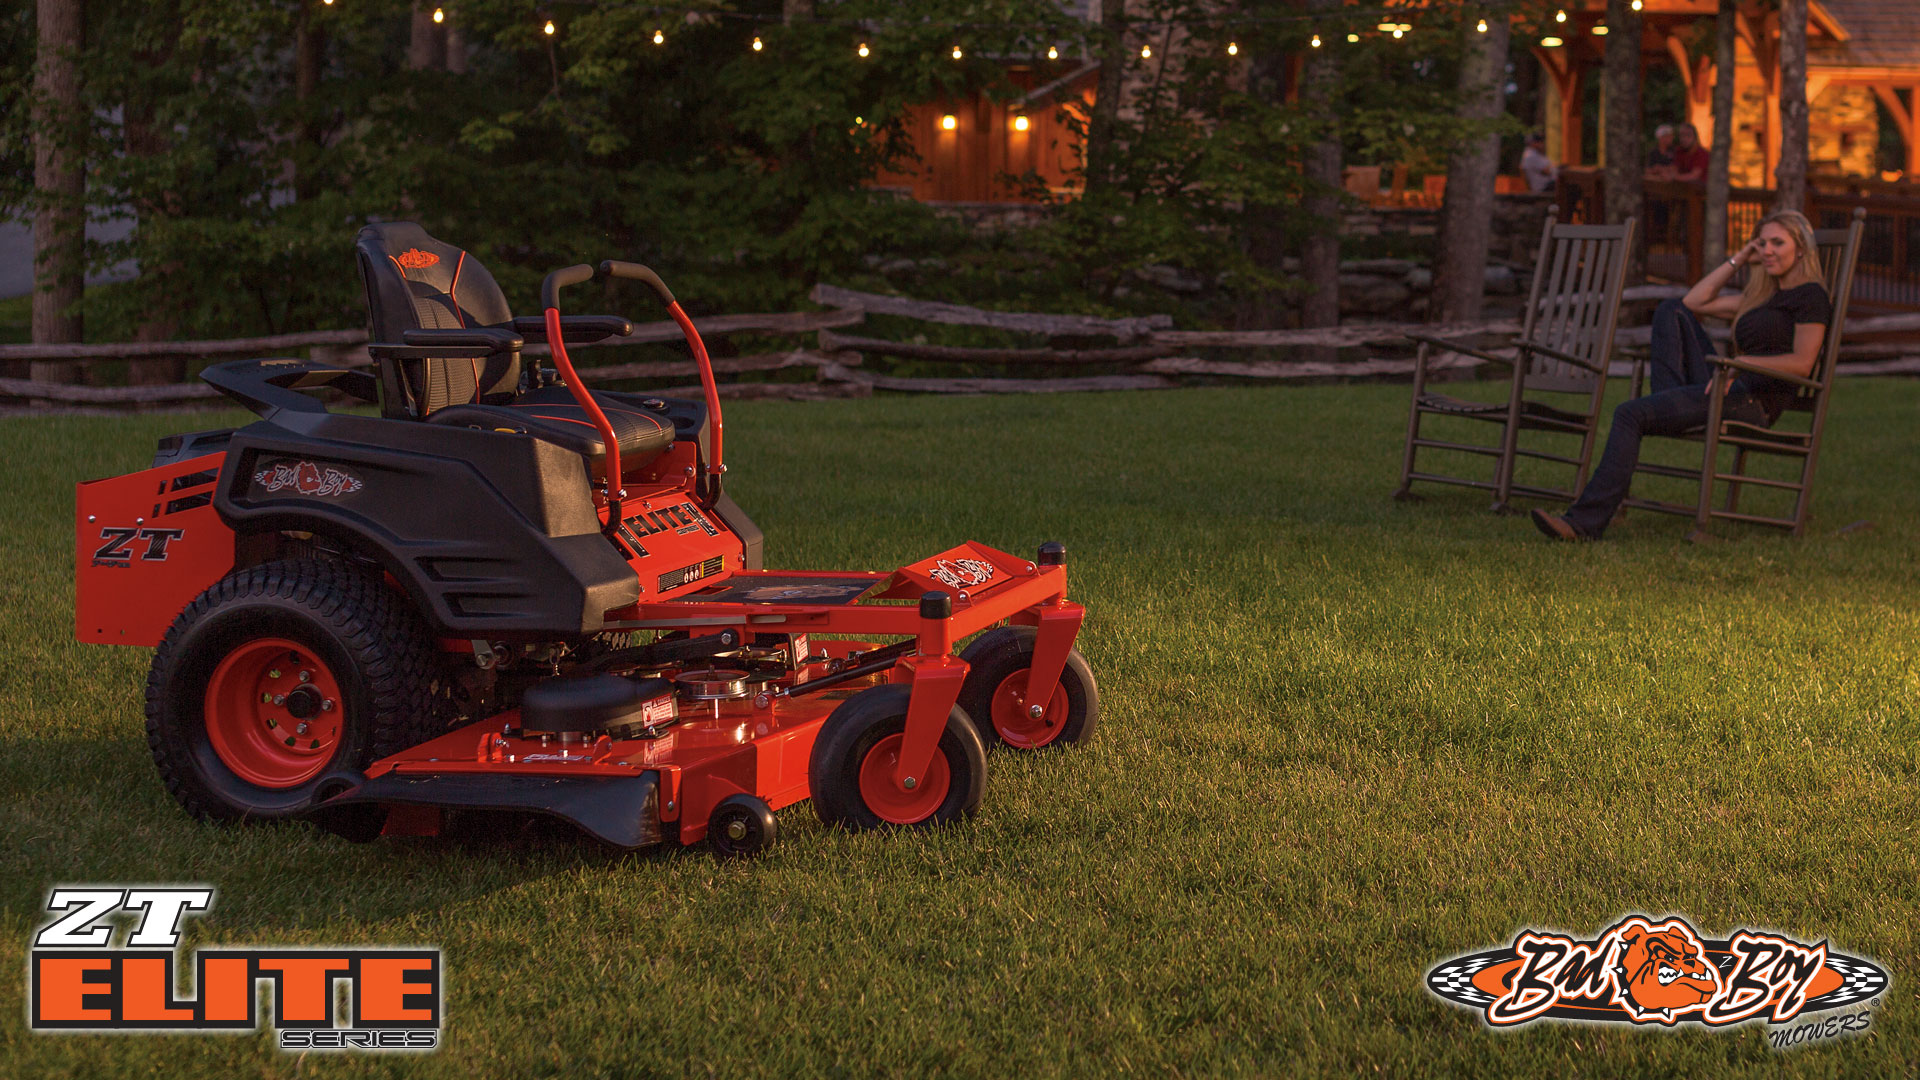 Bad Boy ZT Elite 2016 Zero Turn Mower